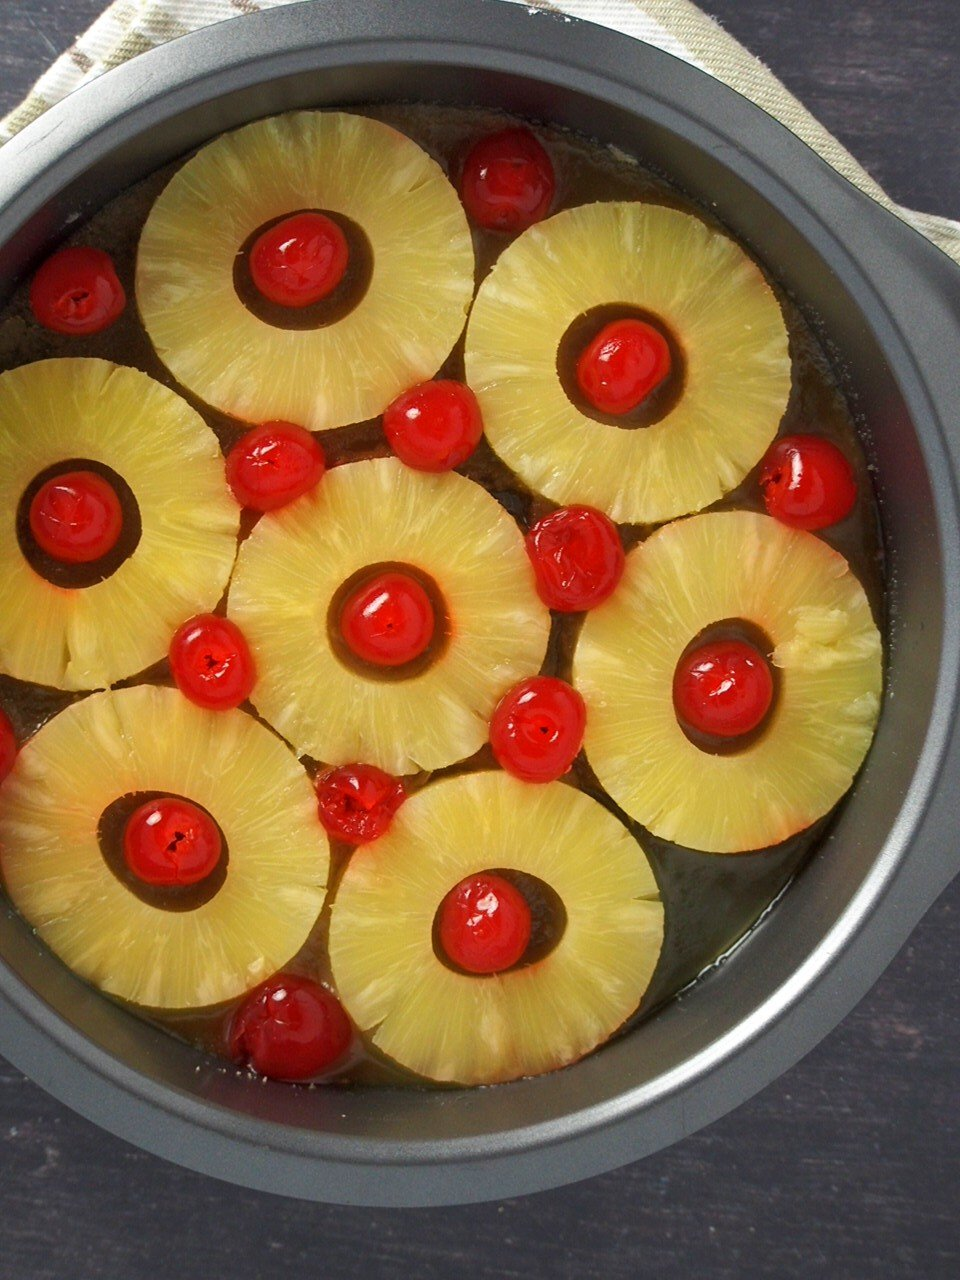 The sliced pineapples and cherries arranged in a single layer in the pan prior to baking.